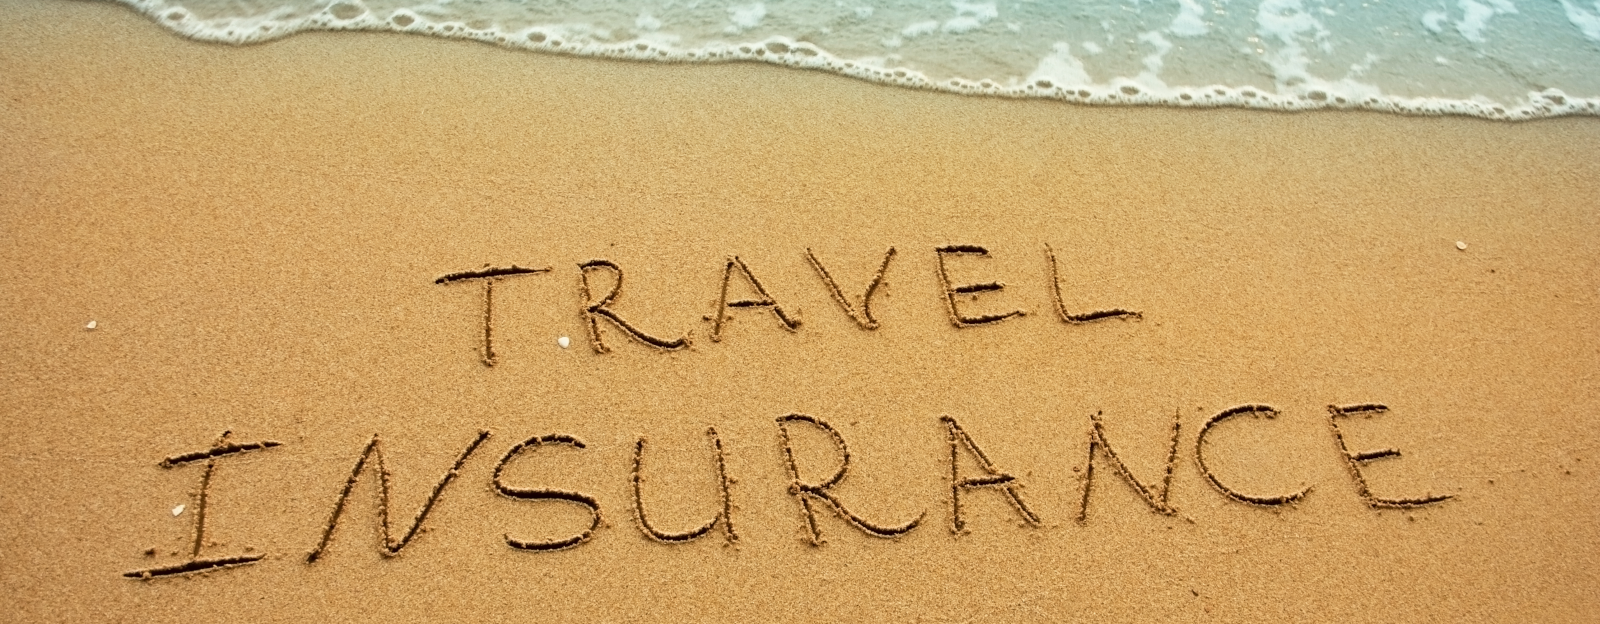 Travel Insurance - Are you covered? - Insights Post